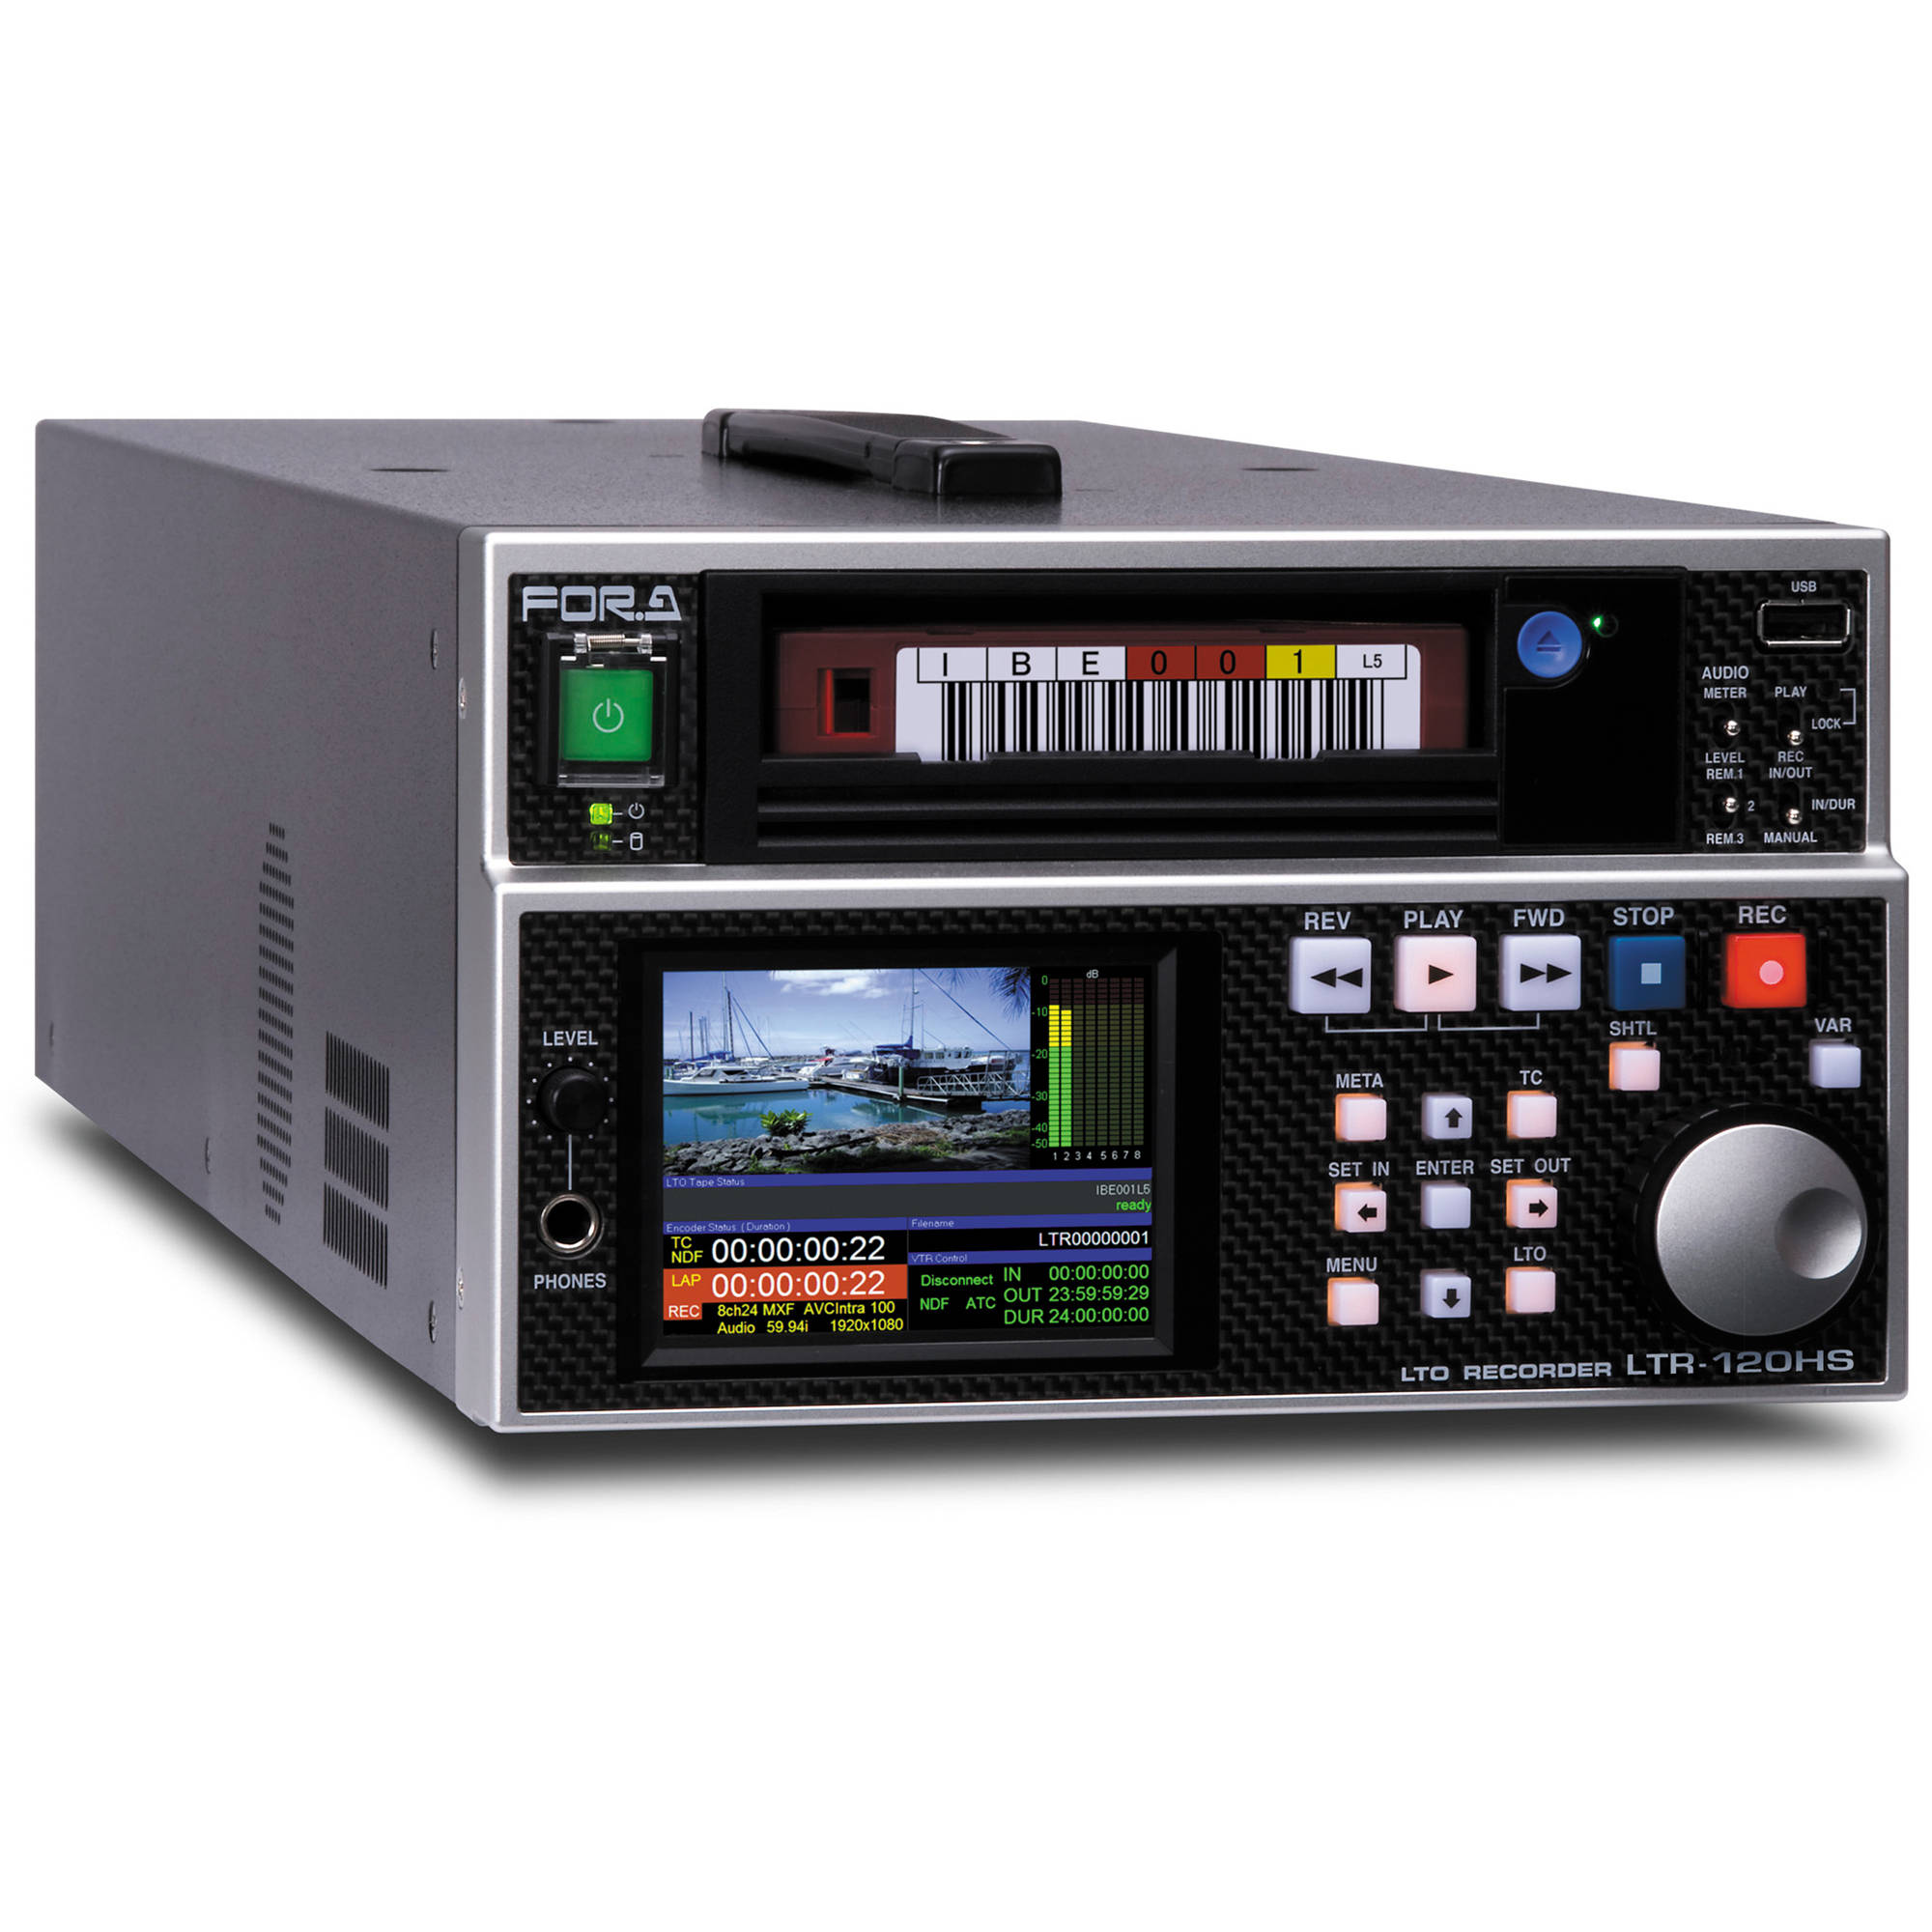 For a linear tape open ltr 120hs avc intra video archiving recorder